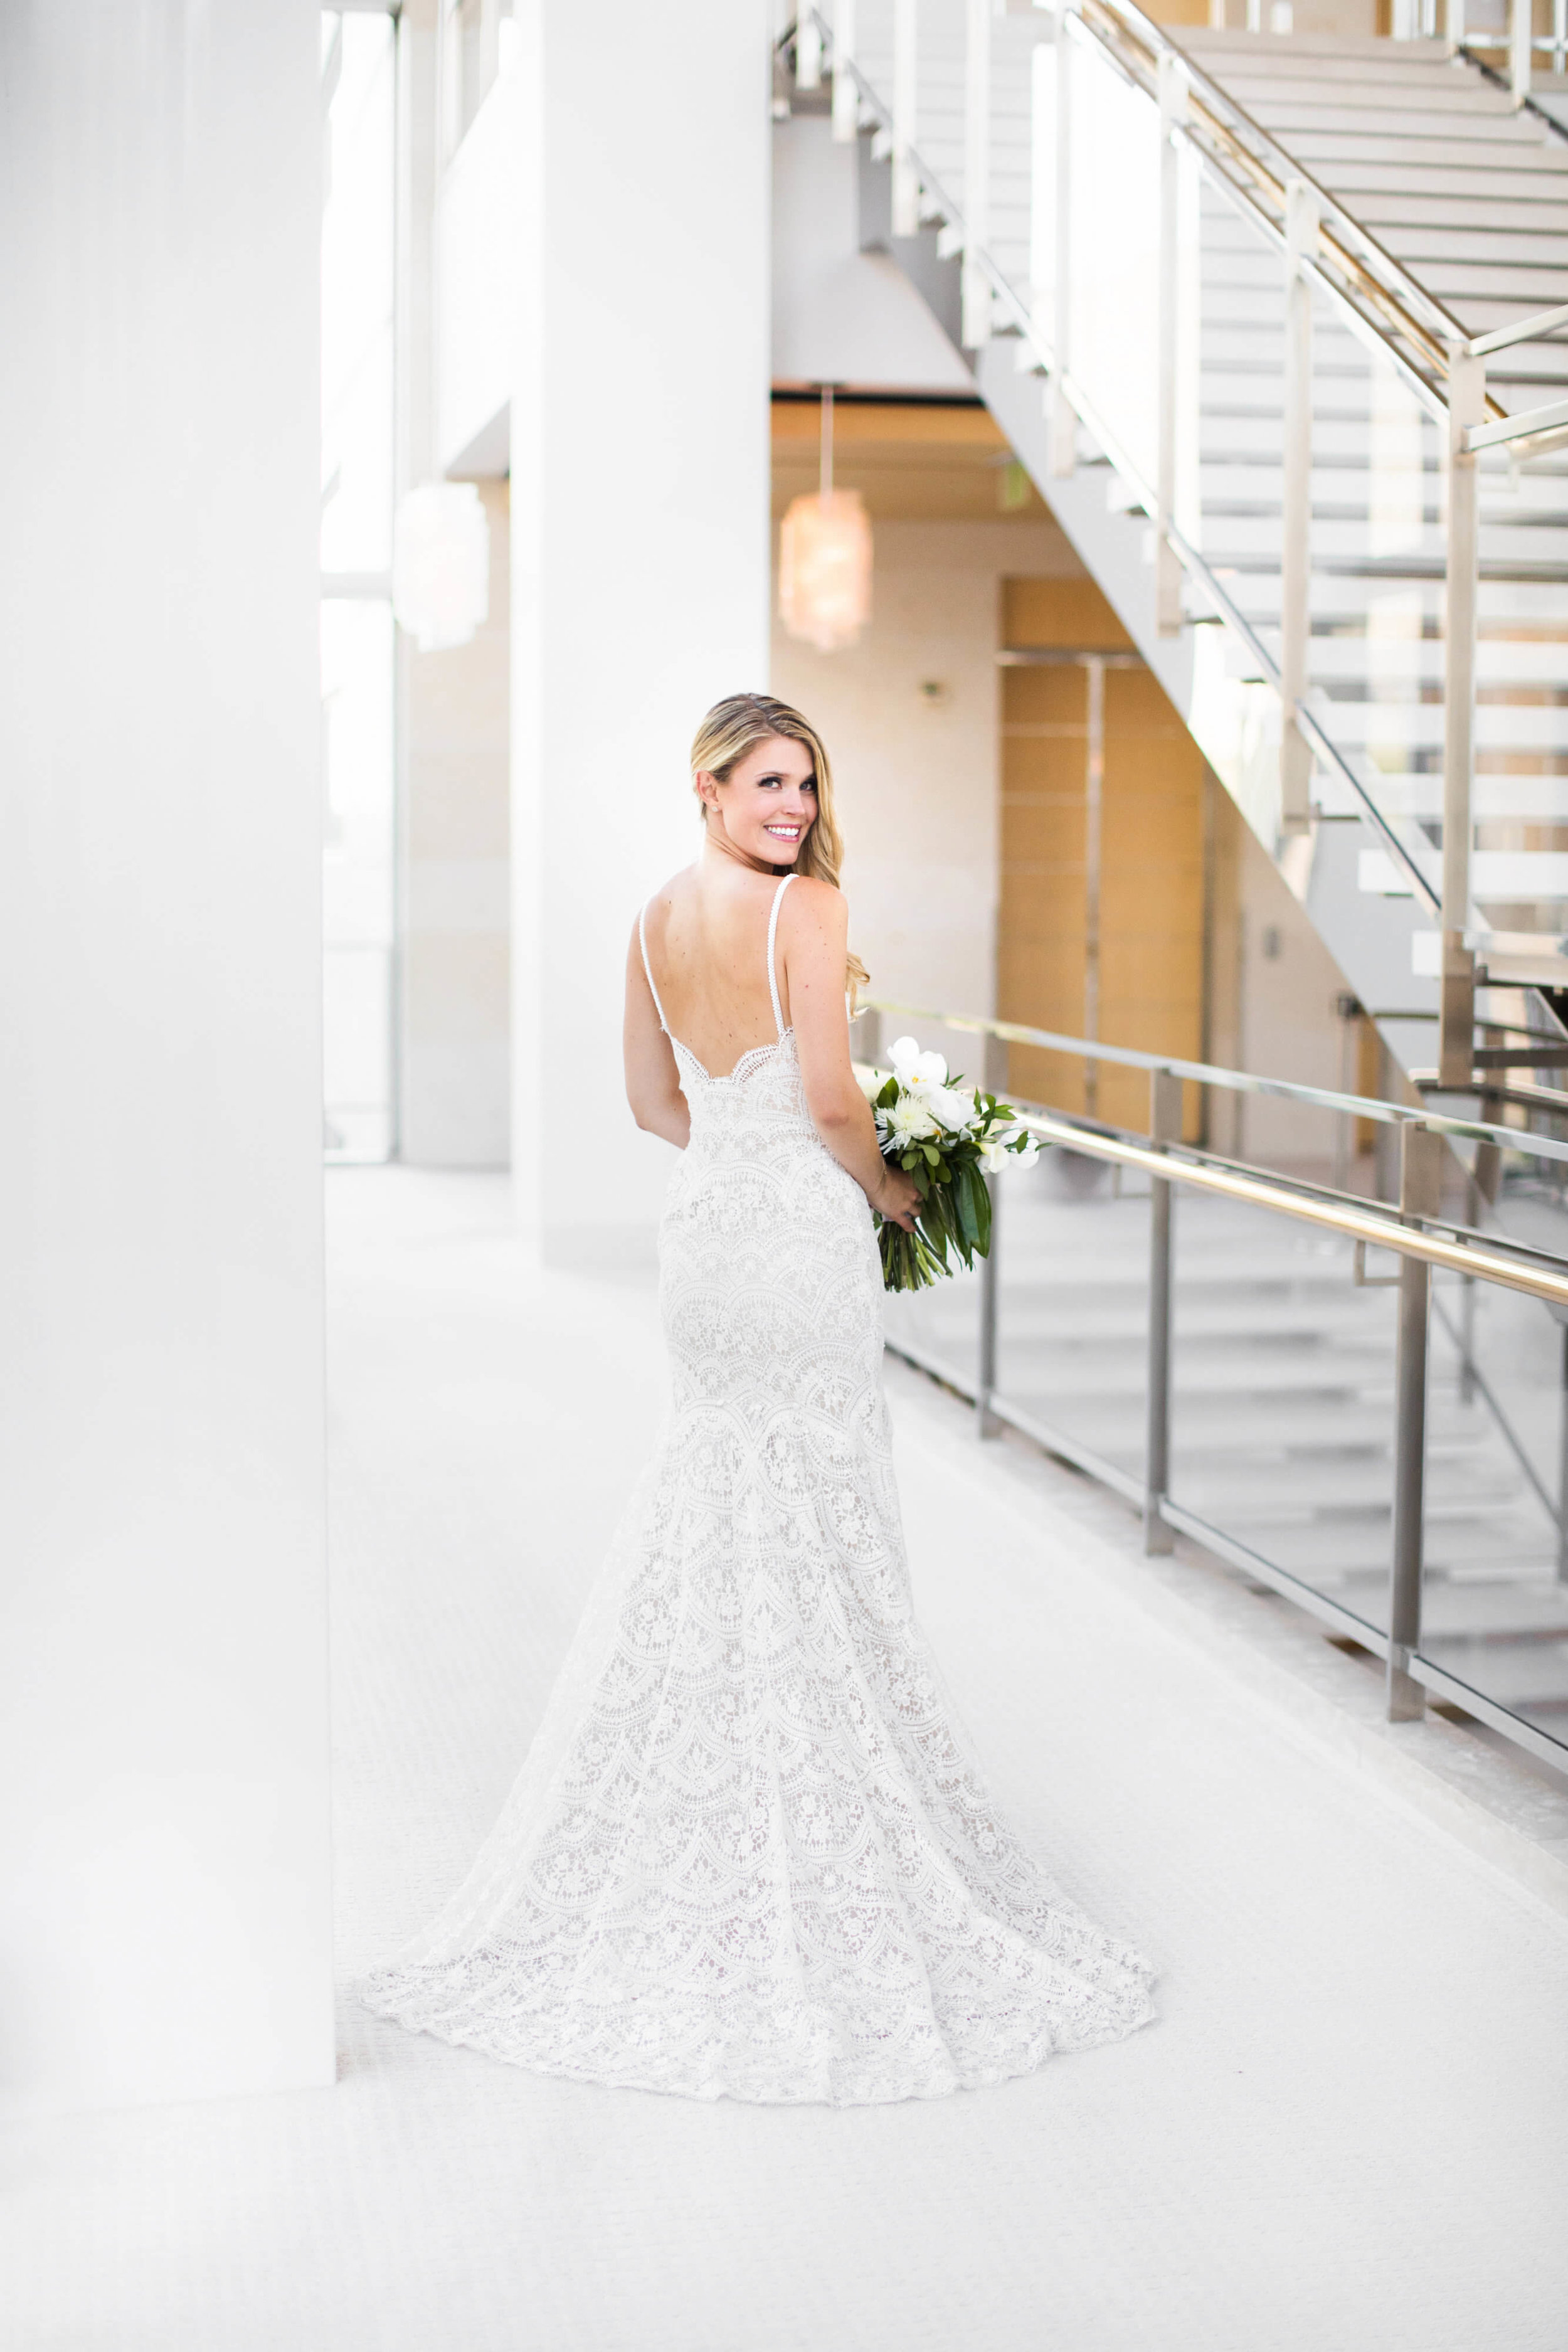 before the first look bride looking back | Studio KH wedding photographer | Sixpence Events and Planning wedding blog